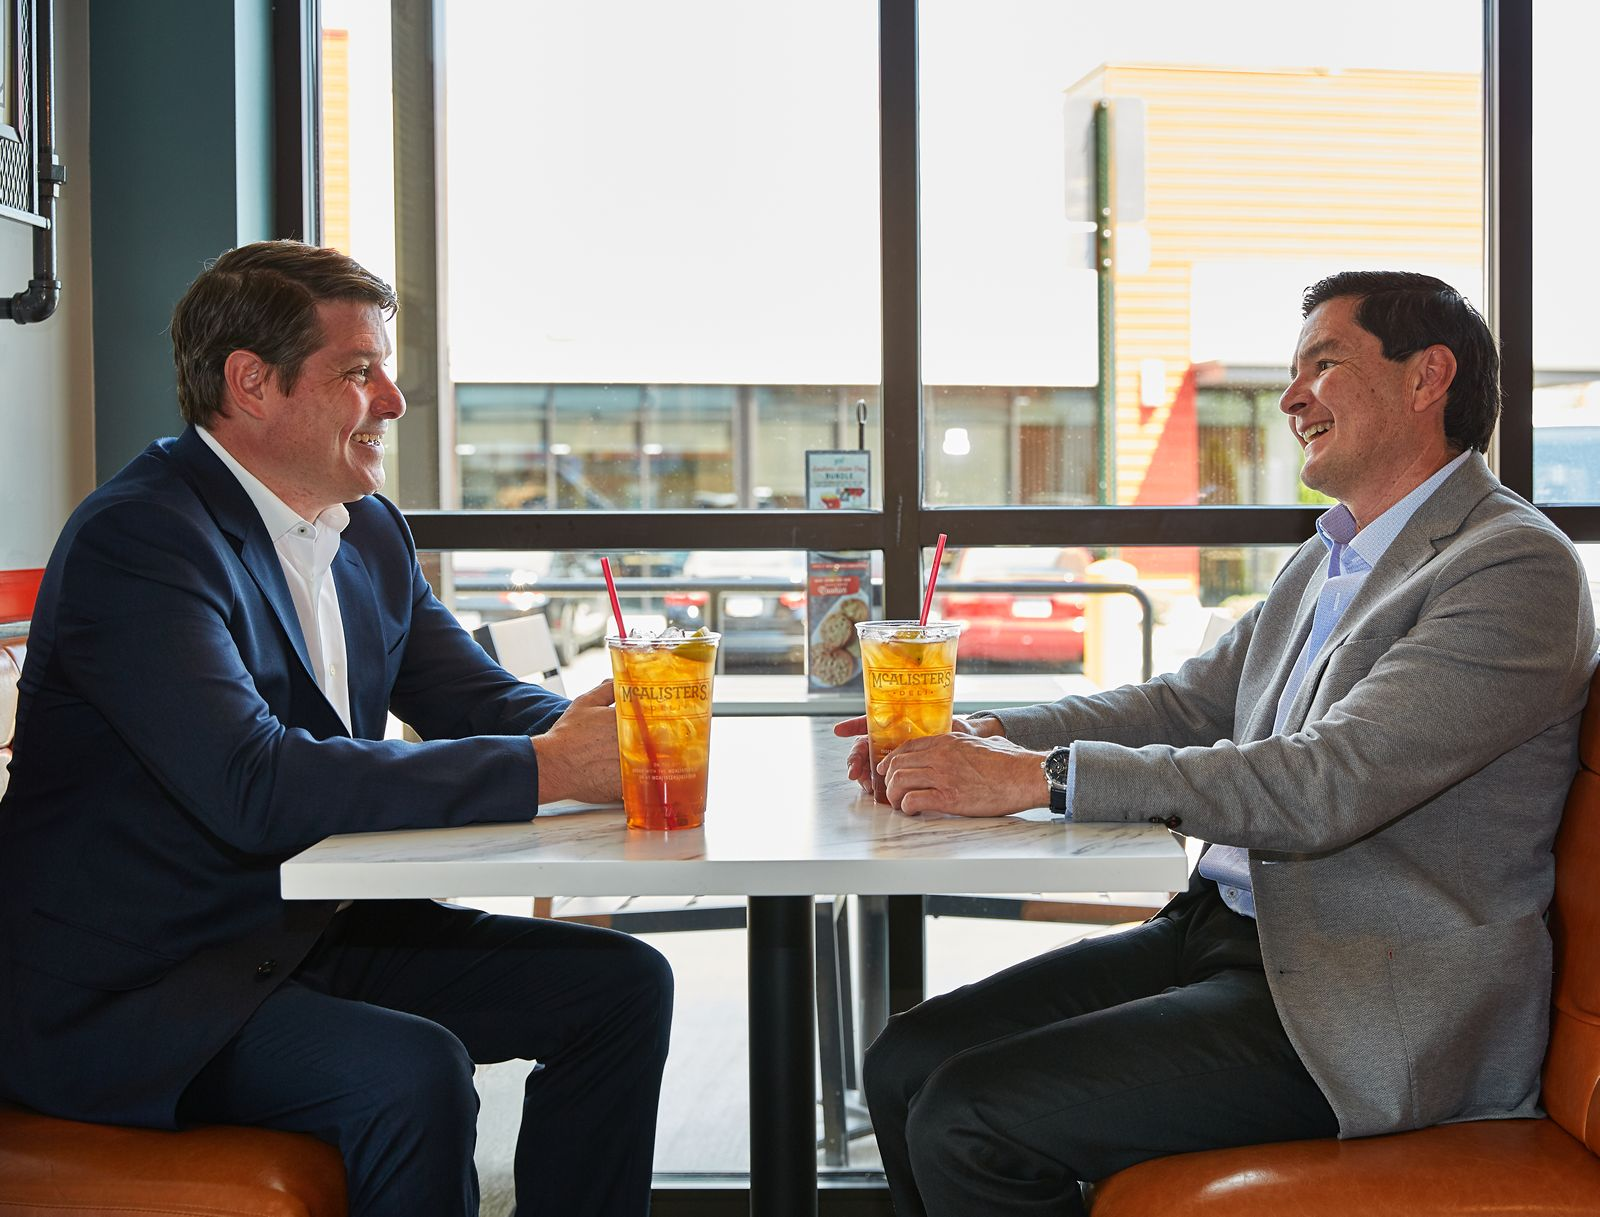 Joe Guith, president of McAlister's Deli with Guillermo Perales, founder and CEO of Sun Holdings, Inc.